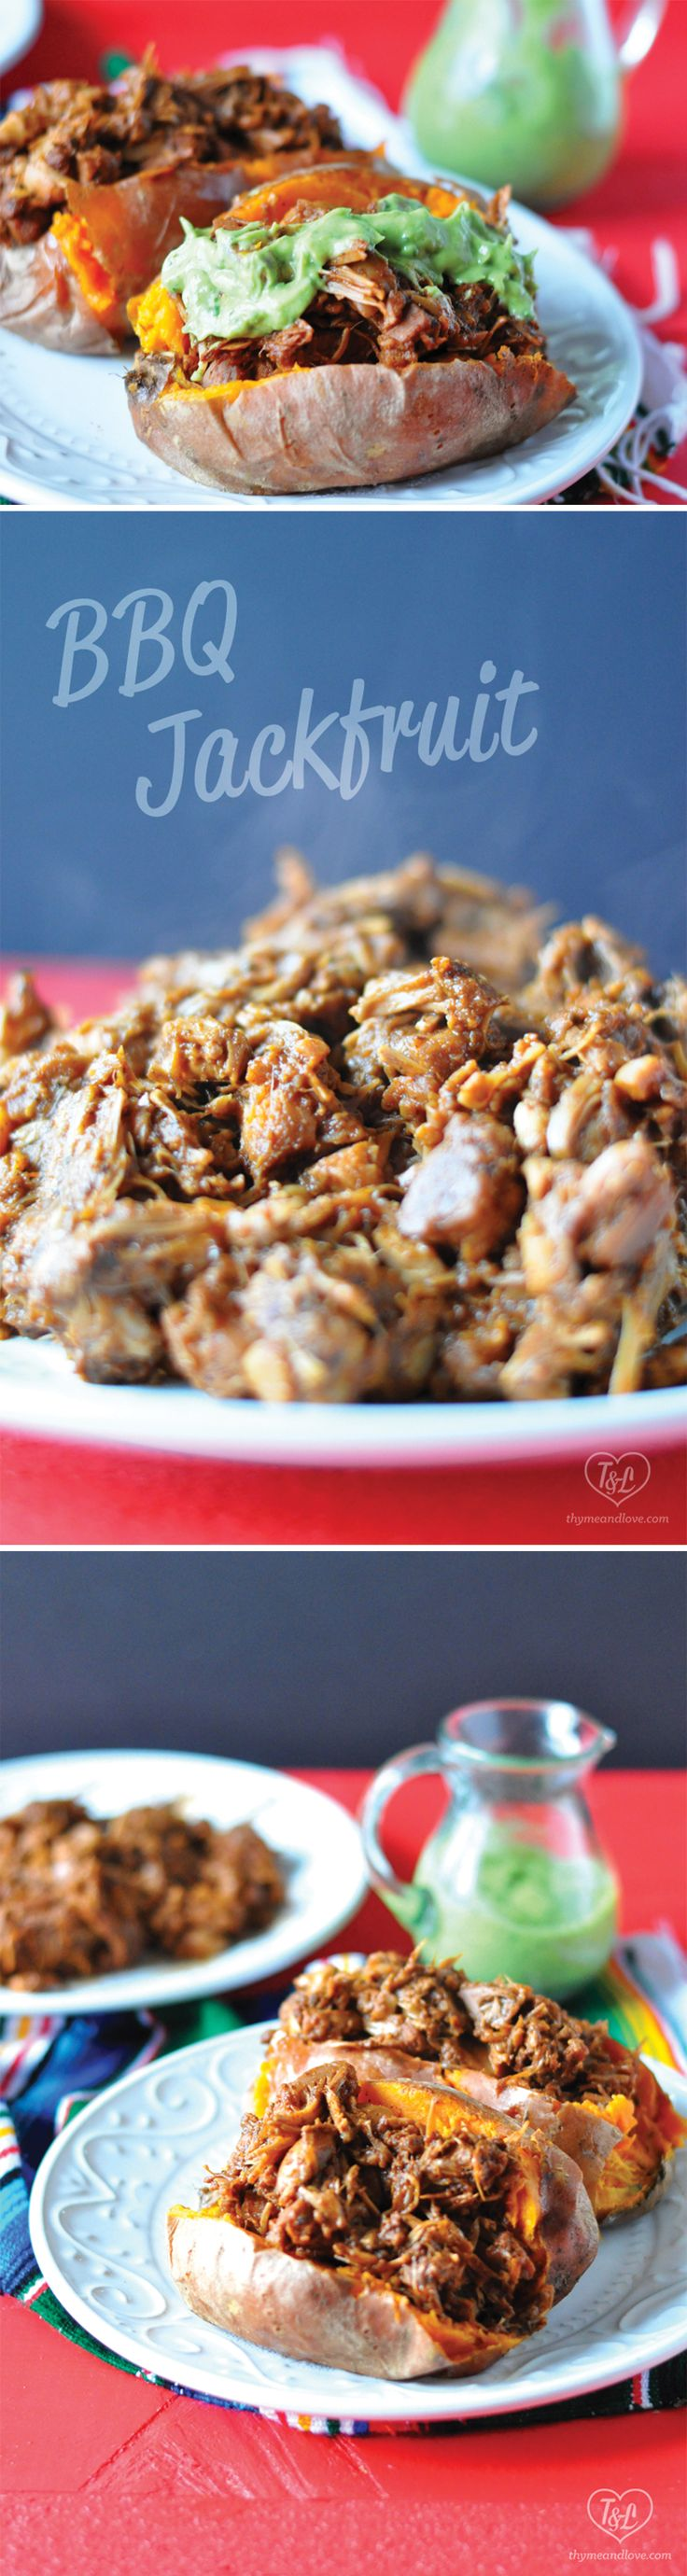 Slow Cooker BBQ Jackfruit served over baked sweet potatoes with an avocado crema…